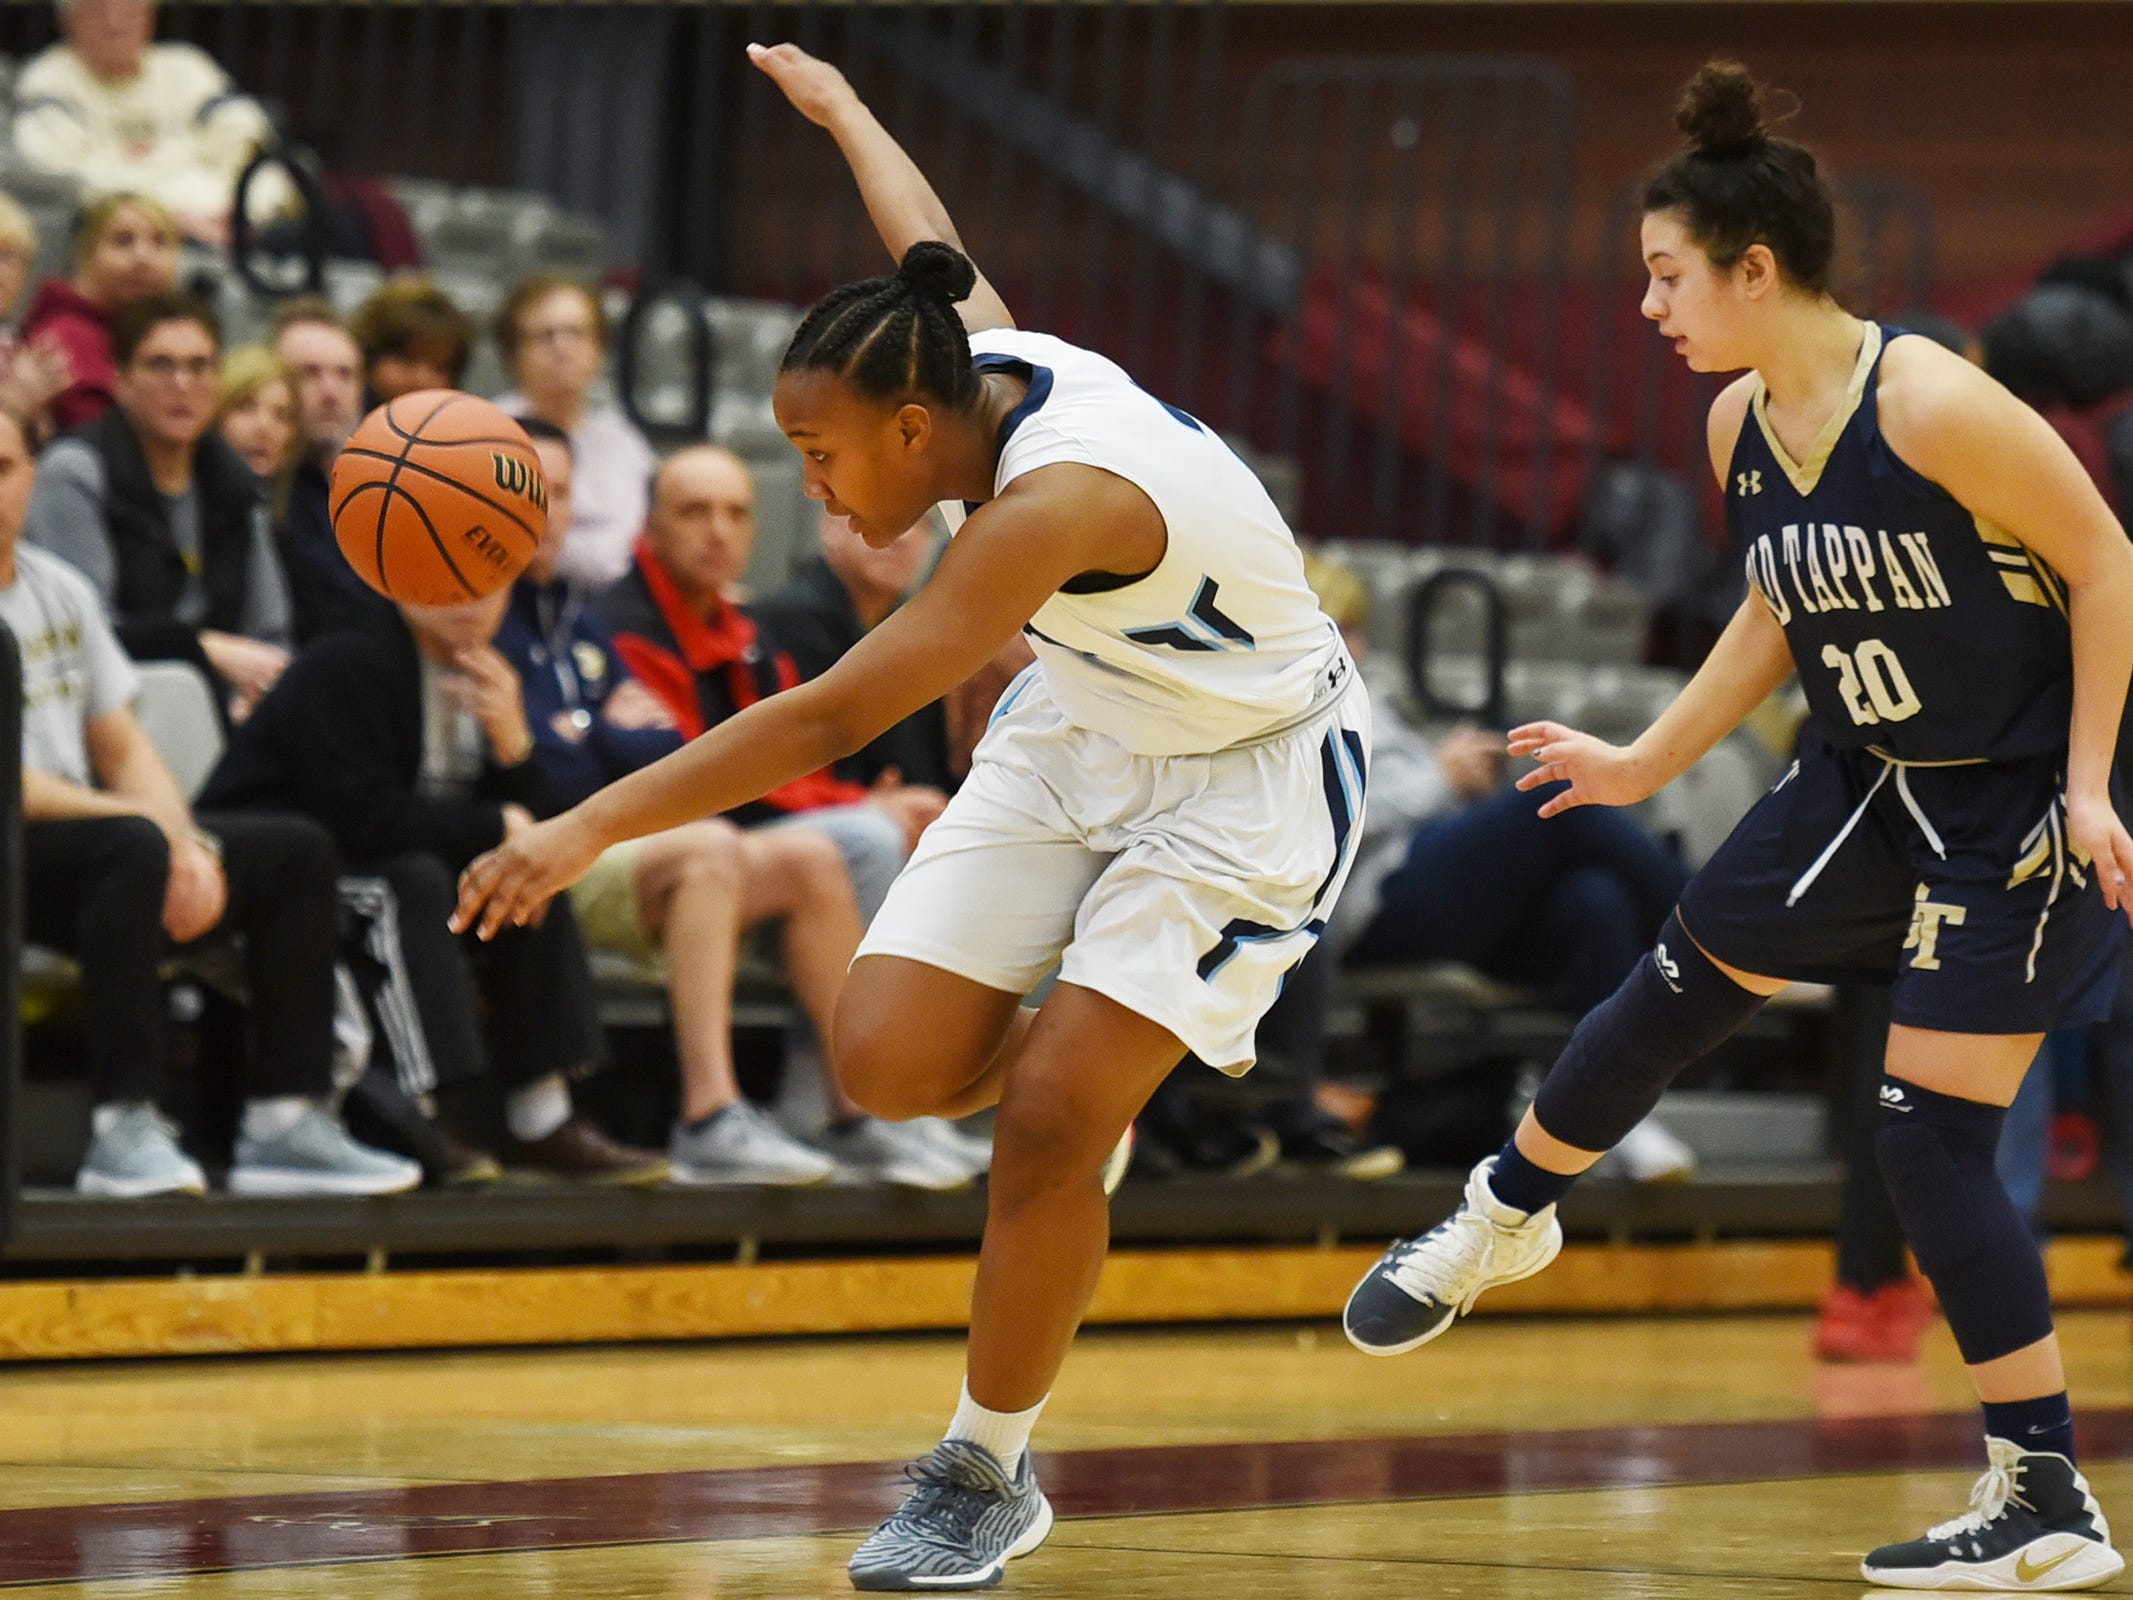 Eliya Herriott (no.2) of Immaculate Heart looses her balance and control of the ball as she passed Gianna Saccoccio (no. 2) of NV/Old Tappan in the second half during the 2019 Bergen County girls basketball championship semifinal at Ramapo College in Mahwah on 02/10/19.